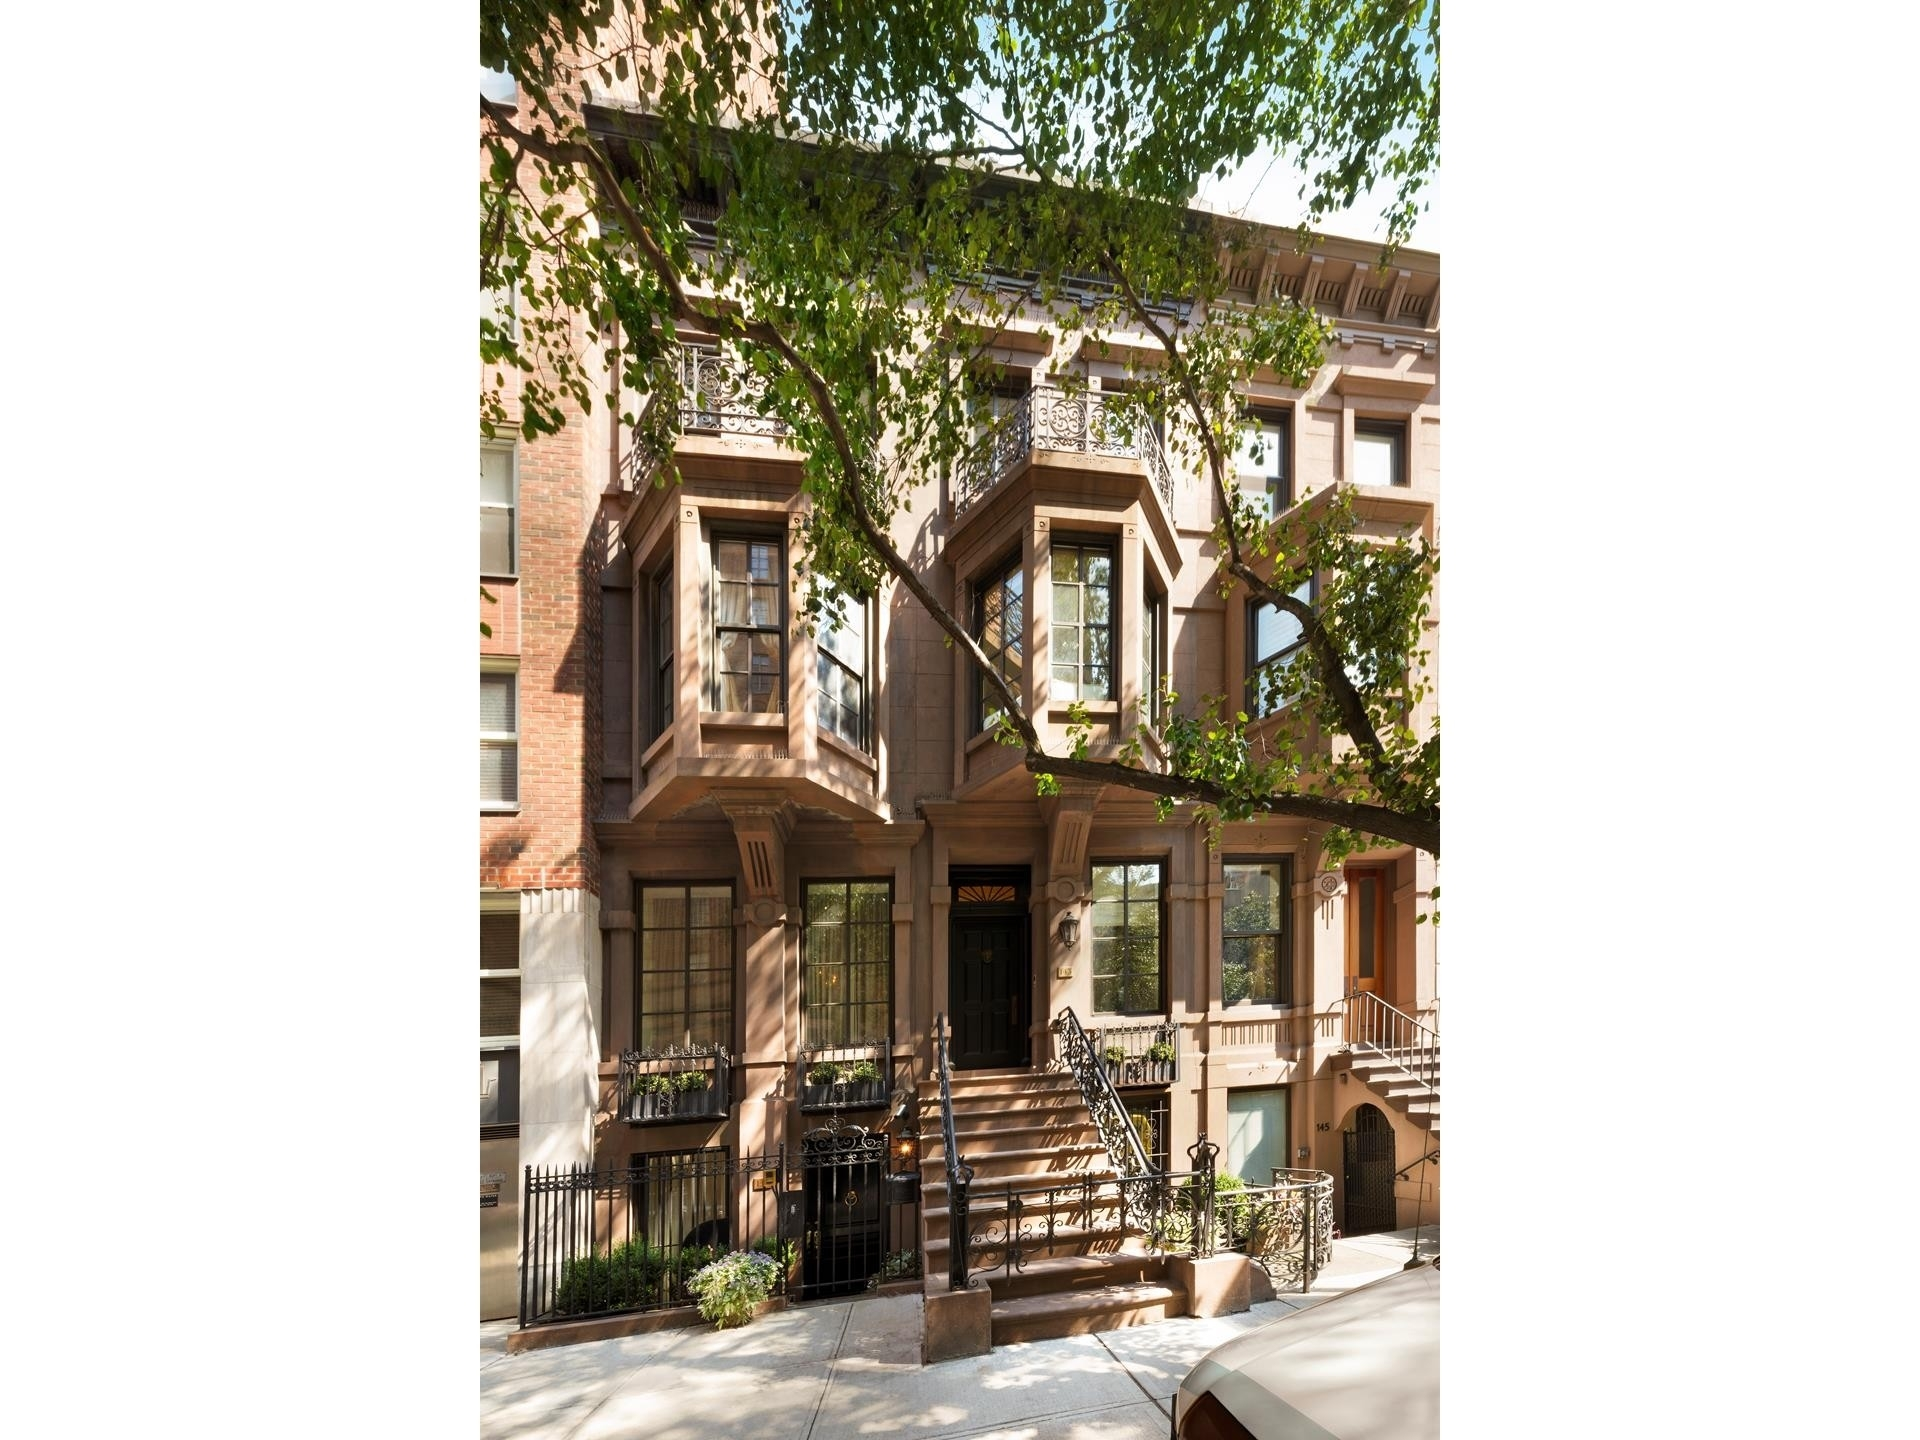 1. 建於143 East 63rd St, Lenox Hill, 纽约, NY